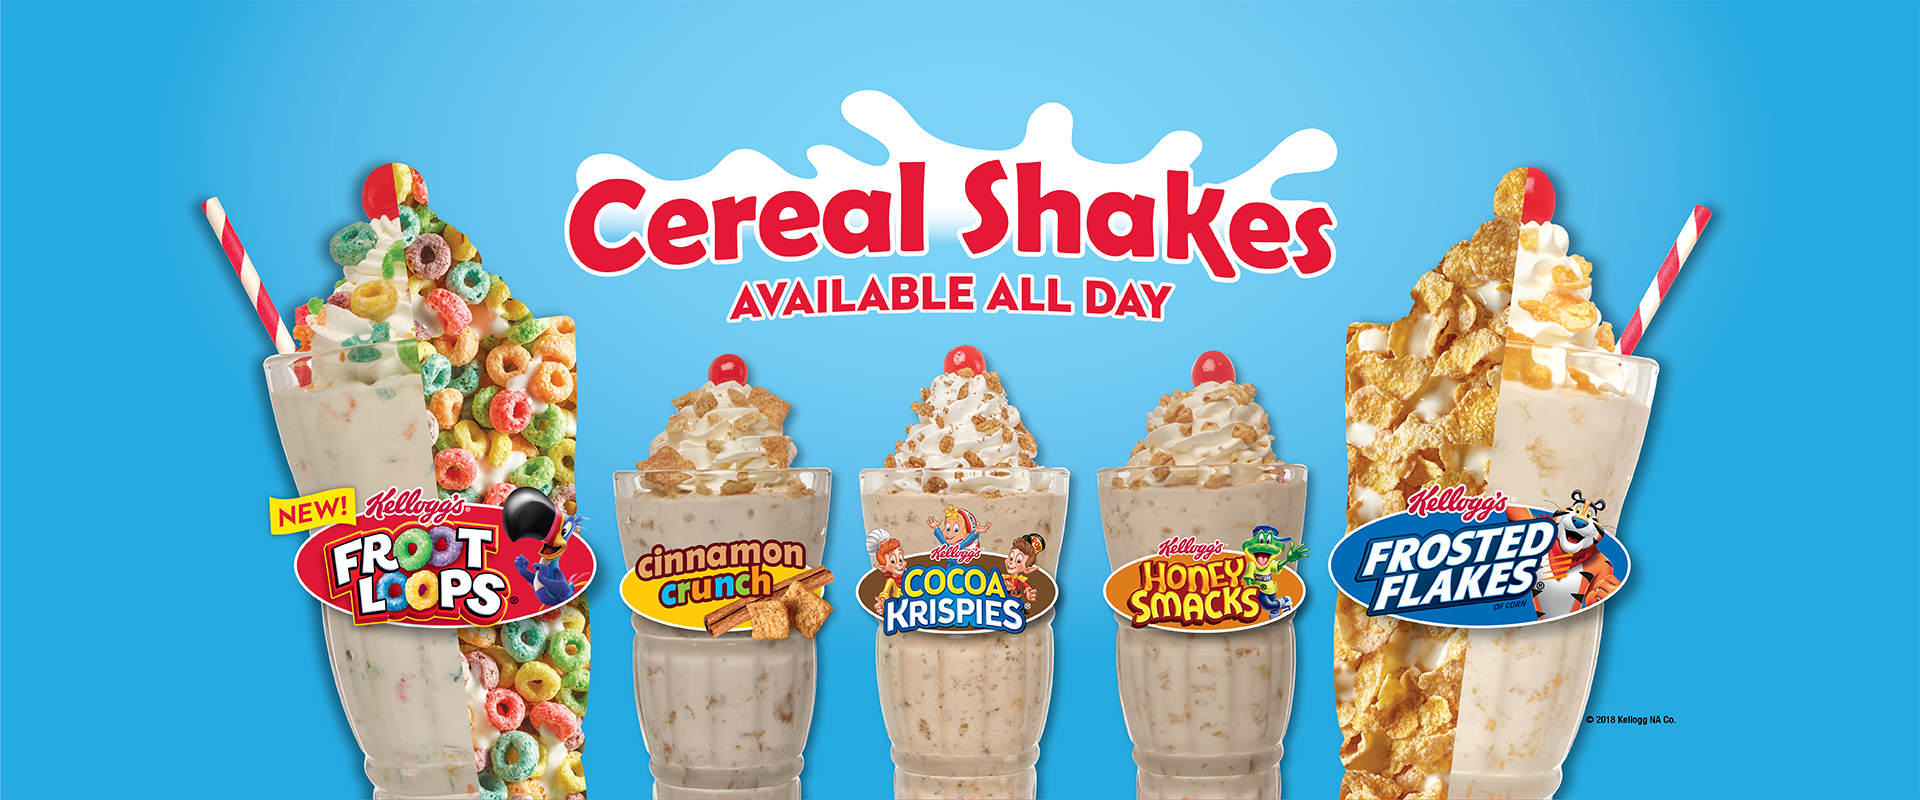 Cereal Shakes Available All Day